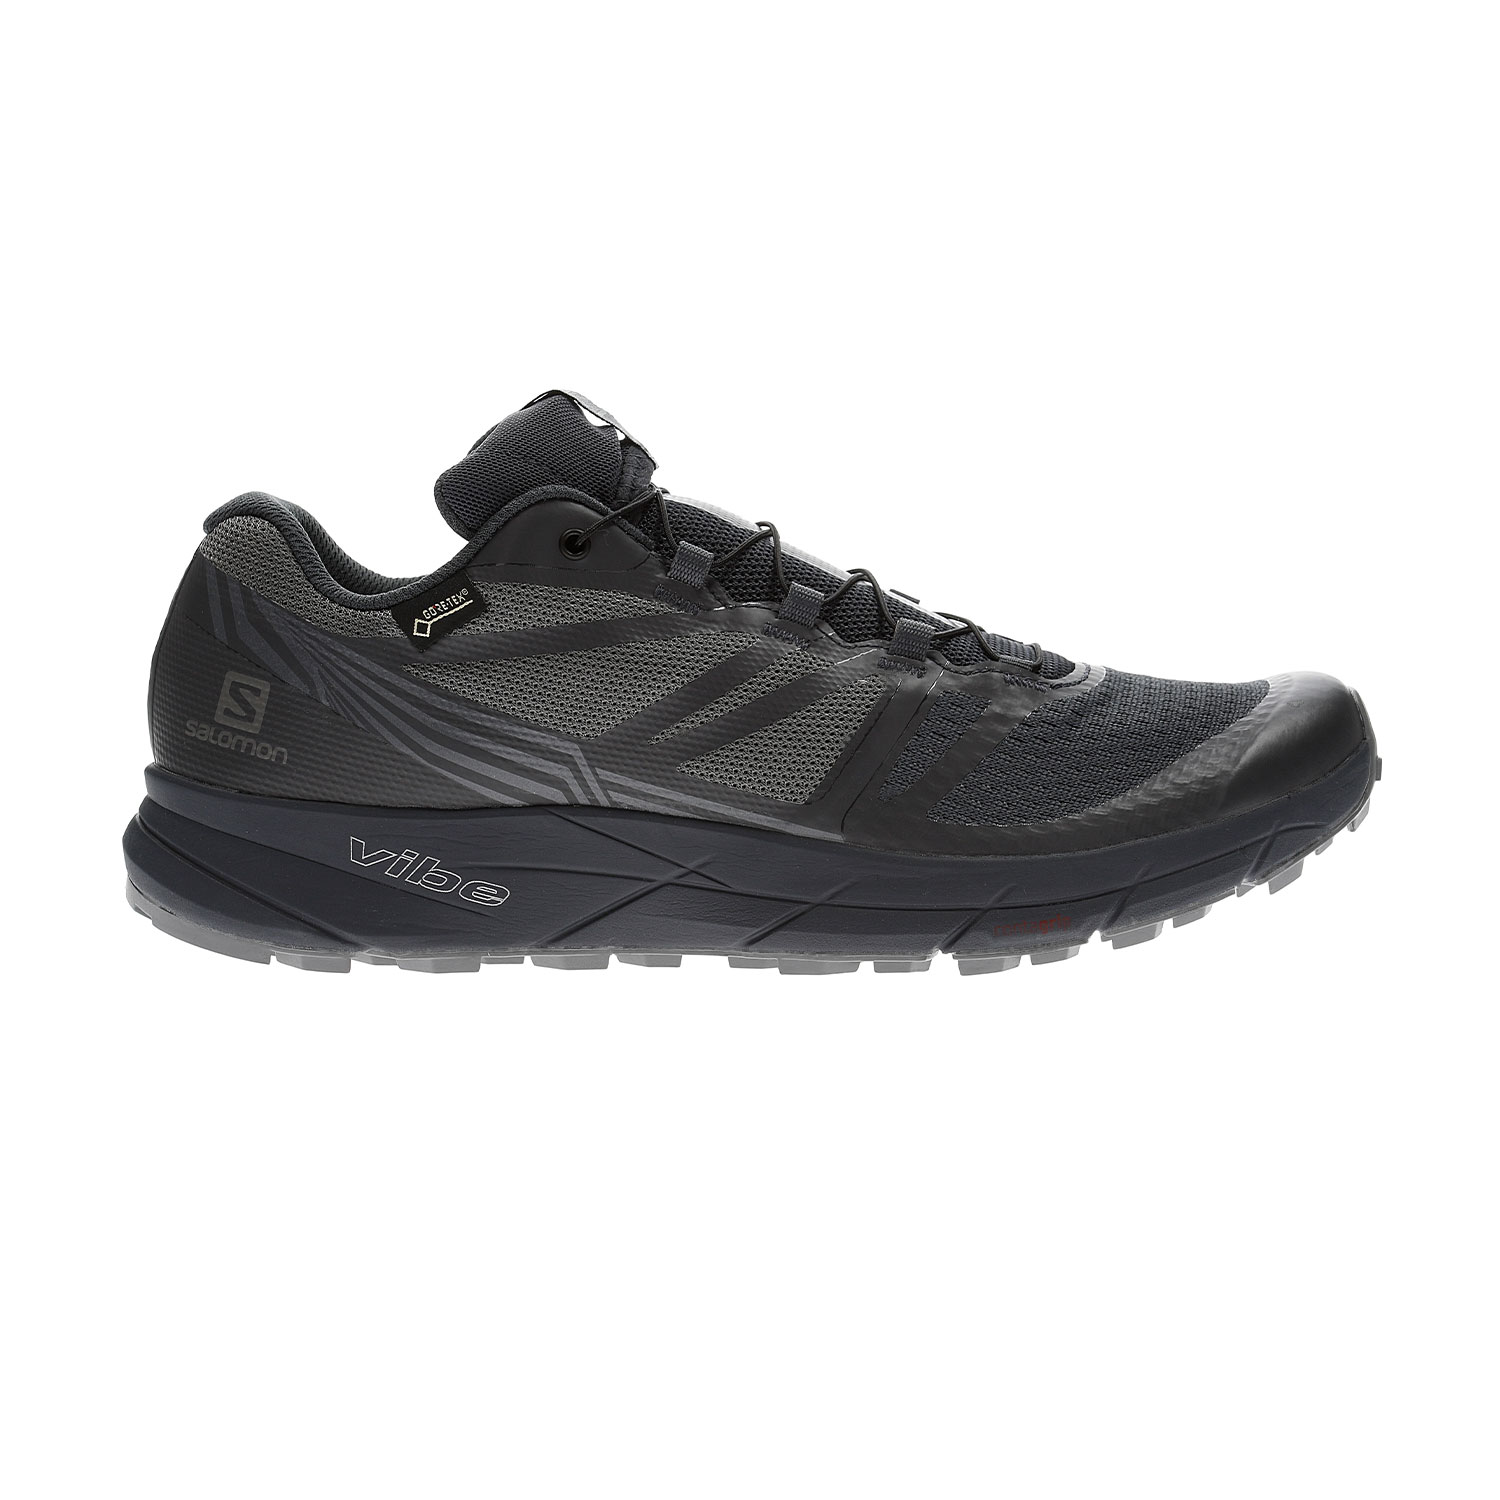 Salomon Sense Ride 2 GTX Mens Running Shoes Gore Tex All